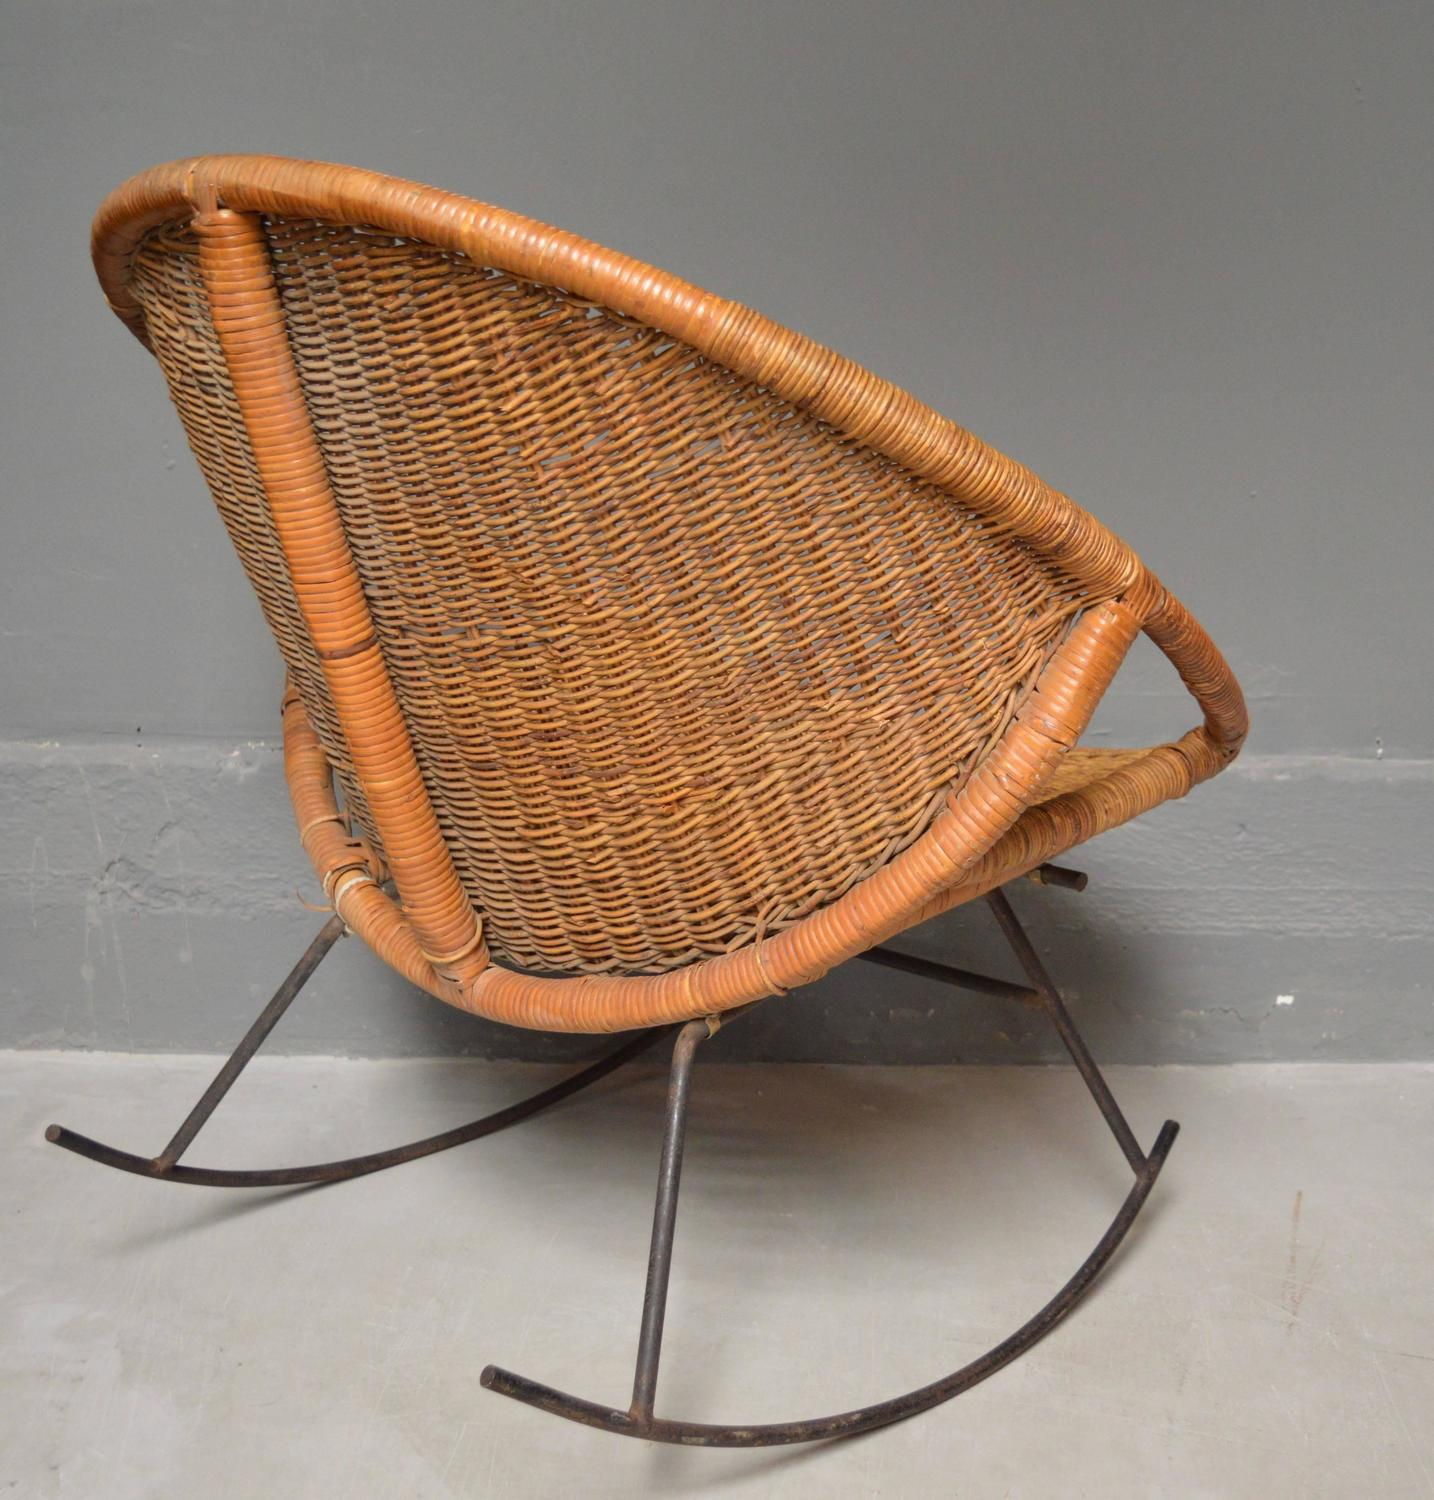 Iron Rocking Chair Rattan And Iron Rocking Chair At 1stdibs